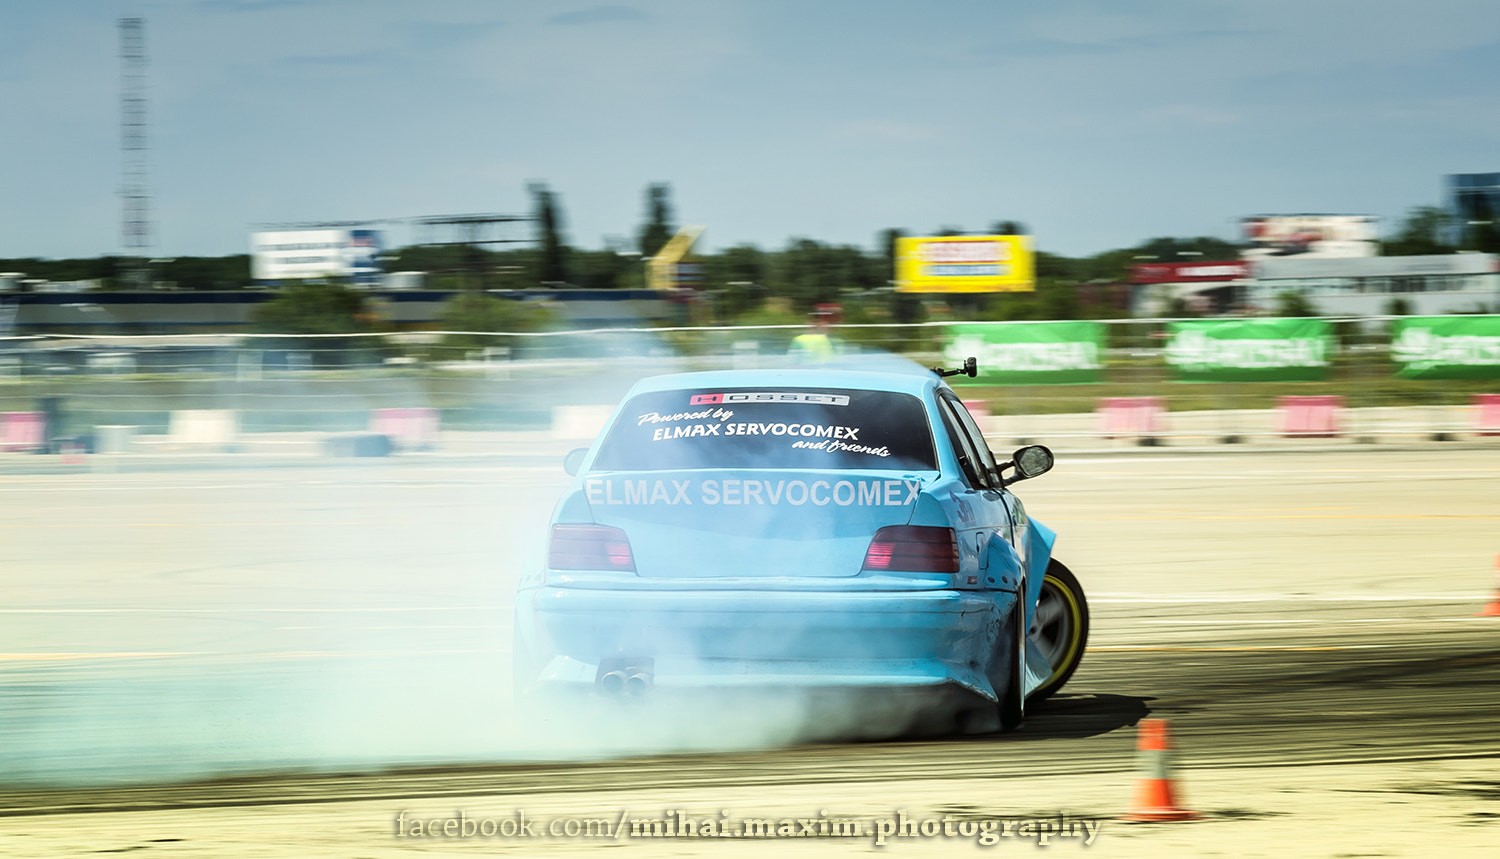 Photograph Mihai Maxim - Round 2 GTT DRIFT Series Romania by Mihai Maxim on 500px